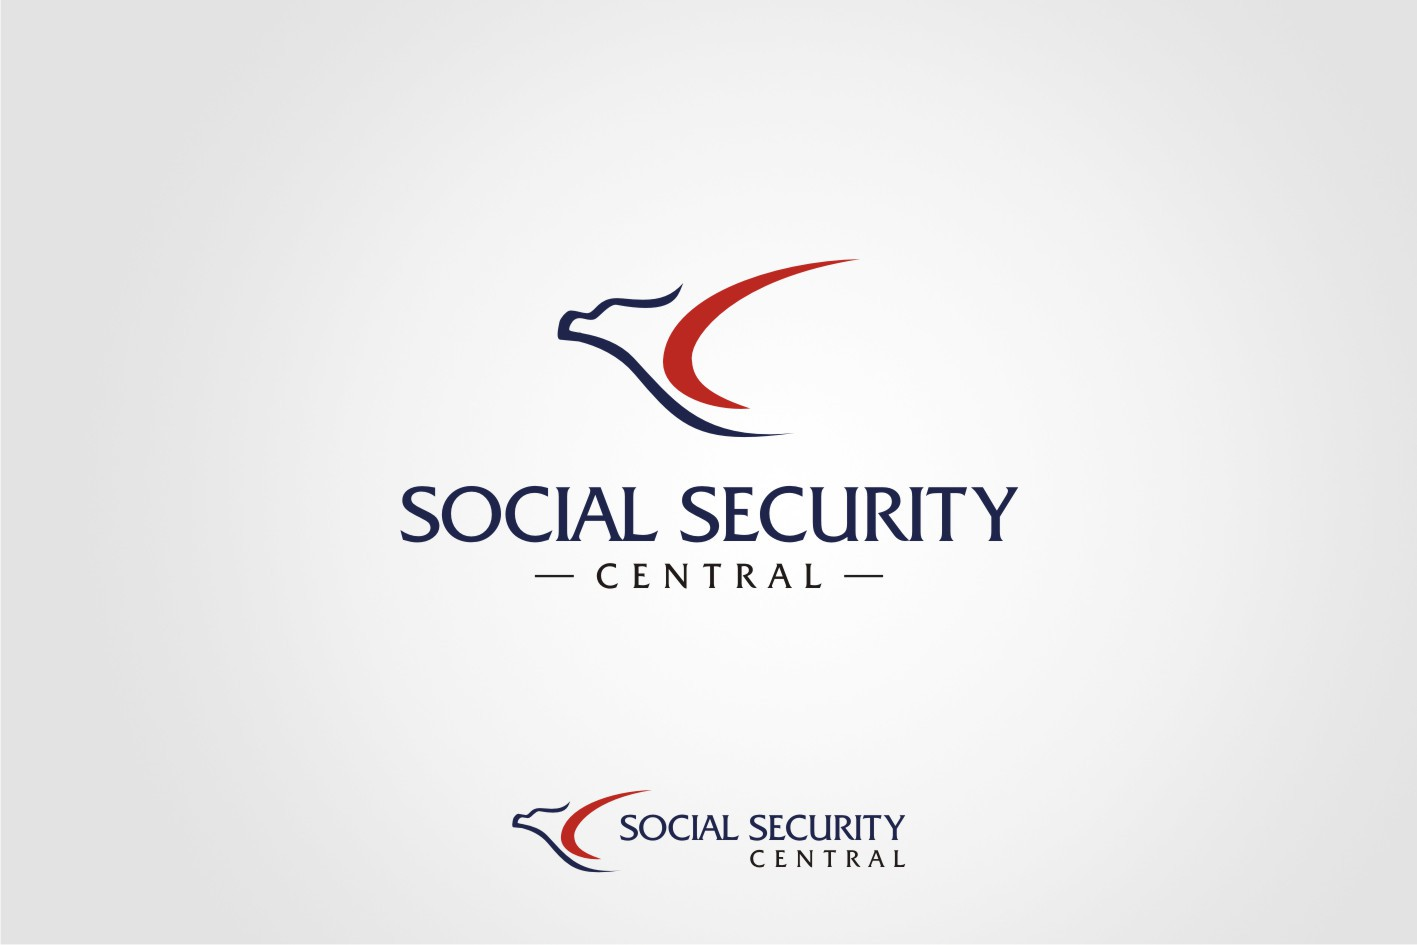 New logo wanted for Social Security Central